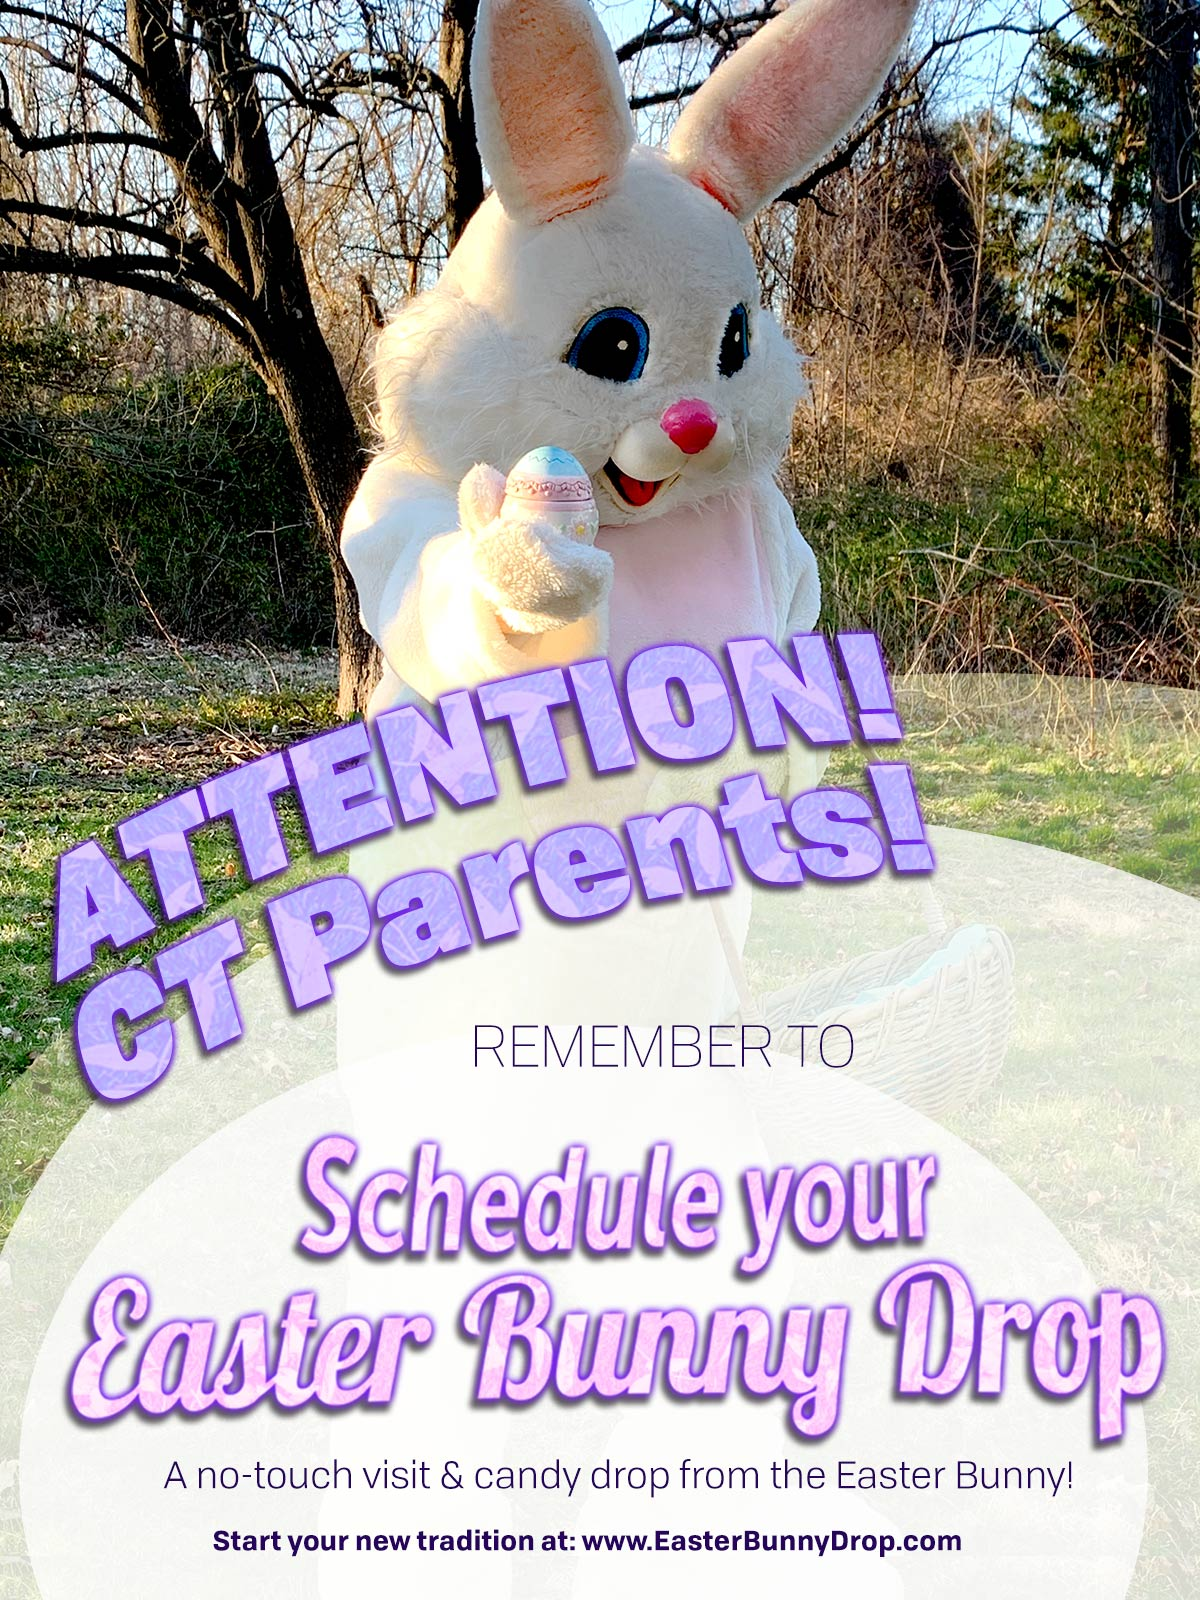 Easter Bunny Drop CT